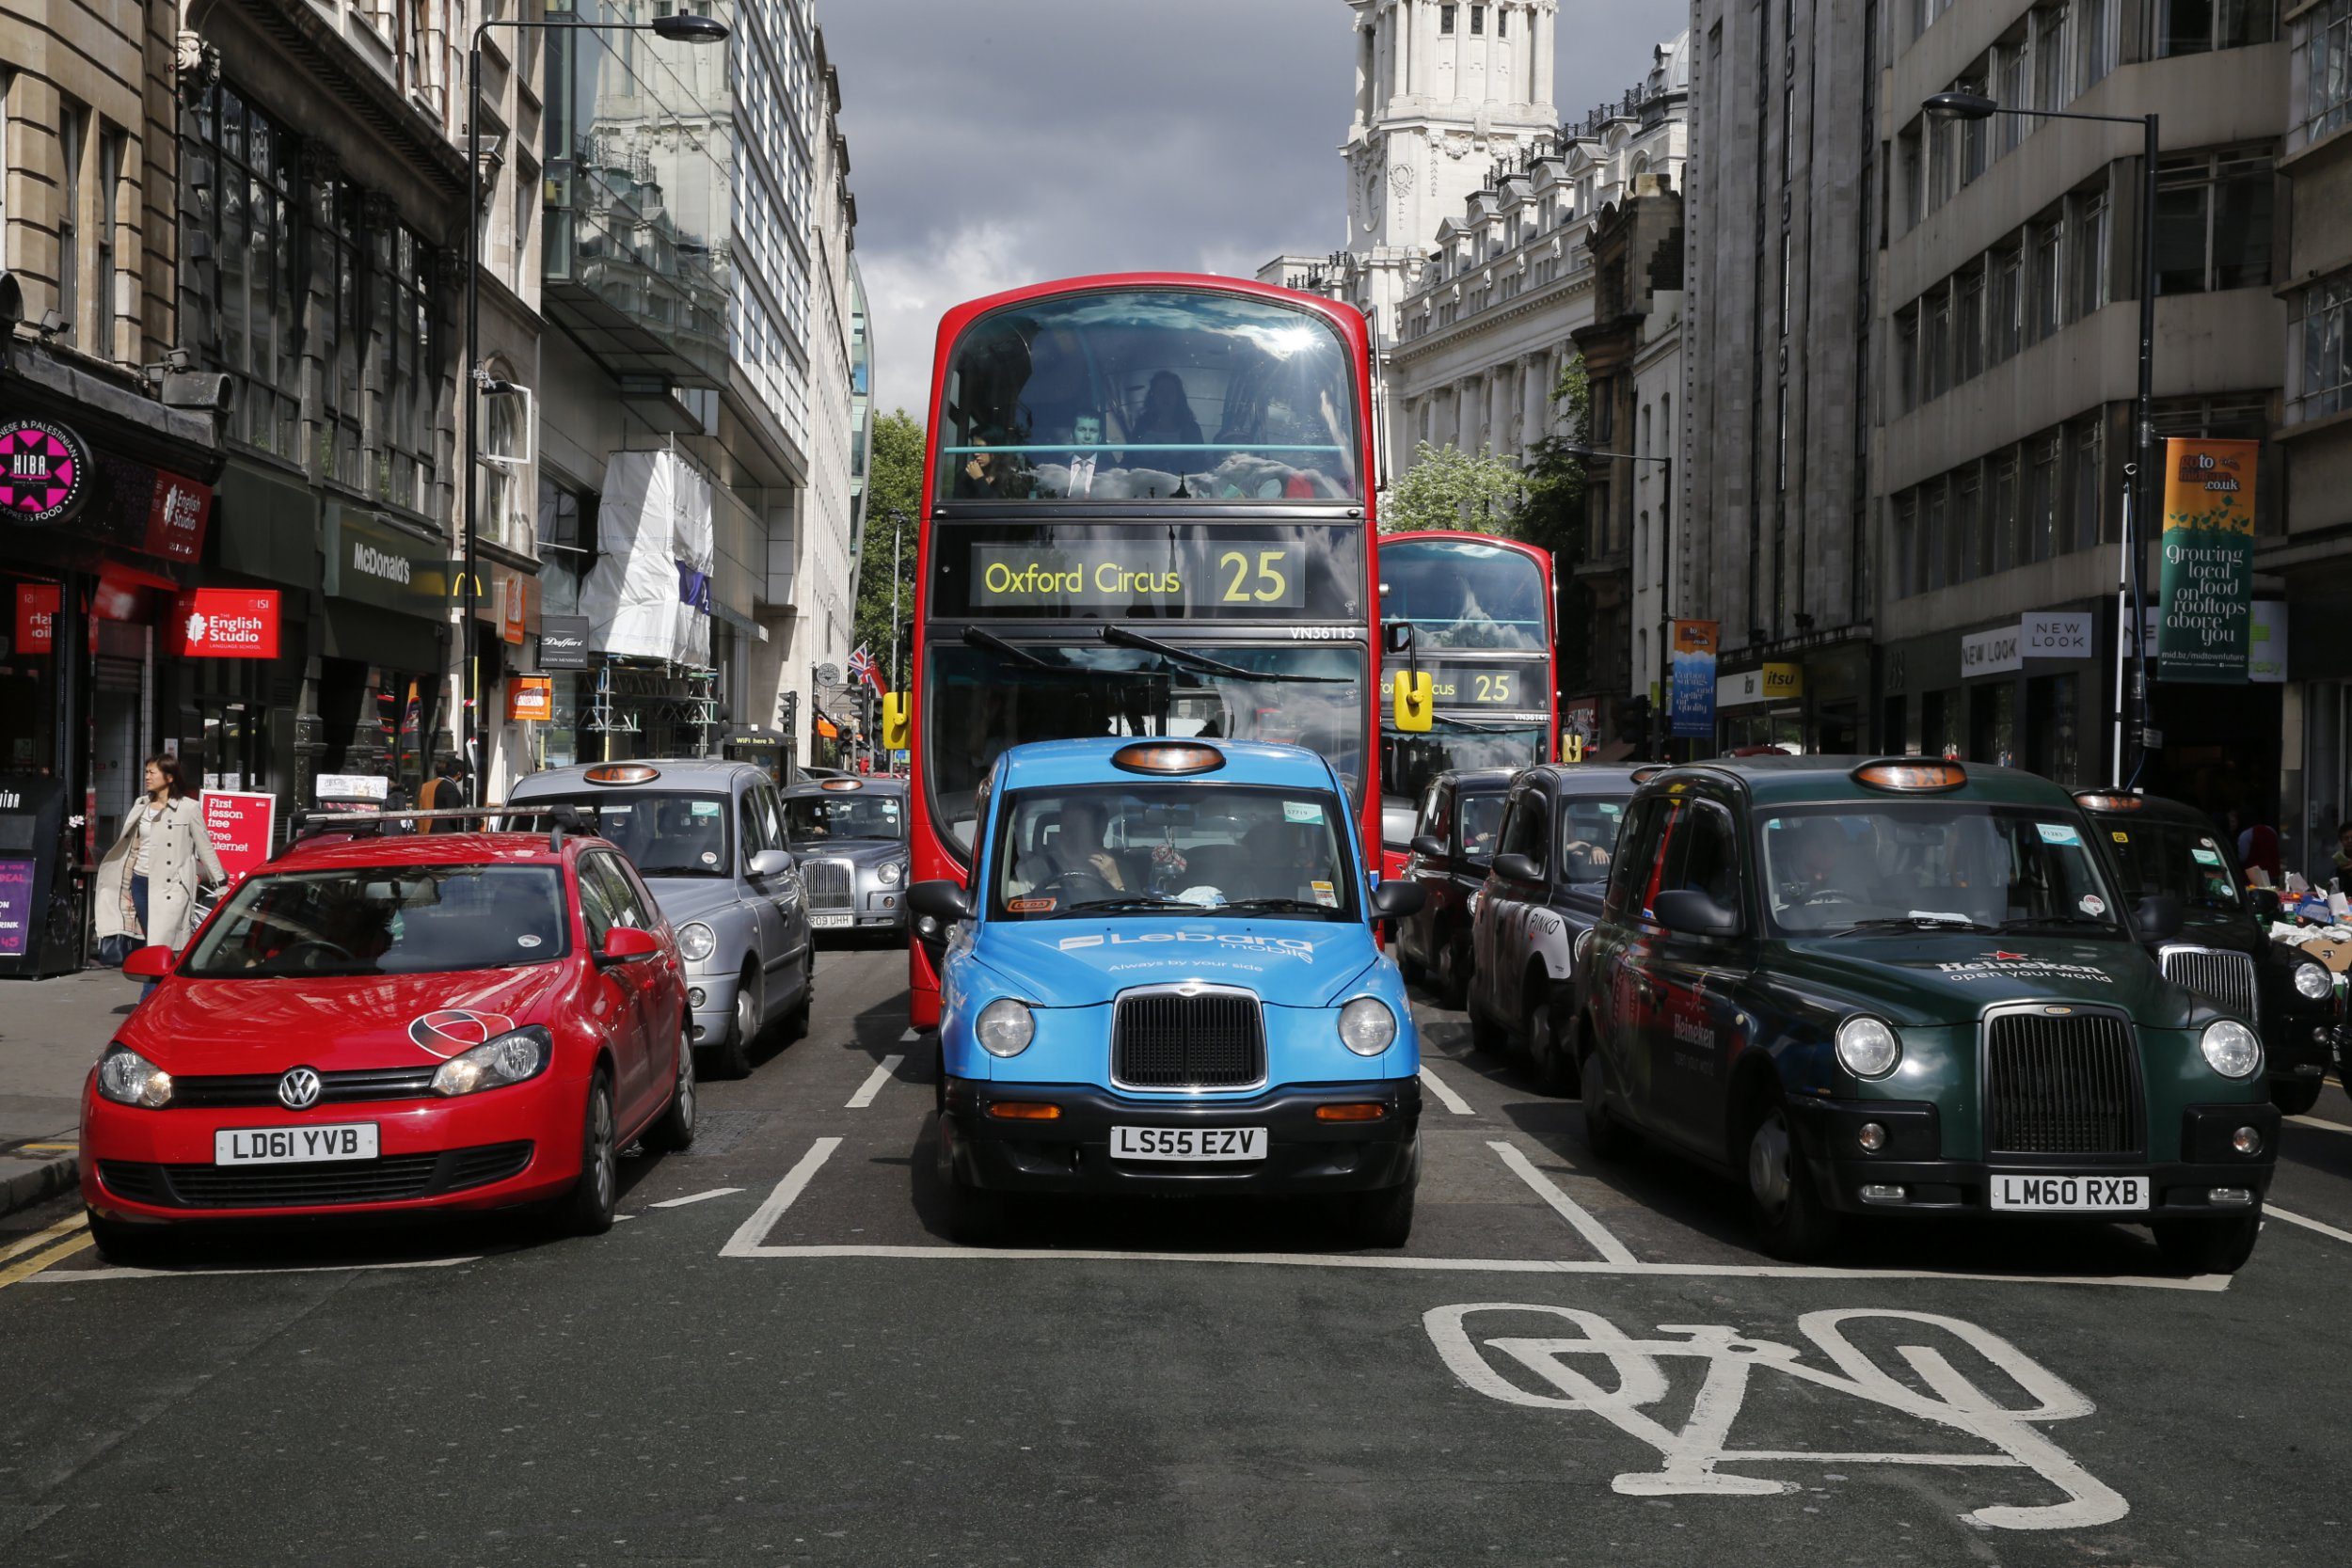 Campaigners call for free bus travel to help tackle pollution